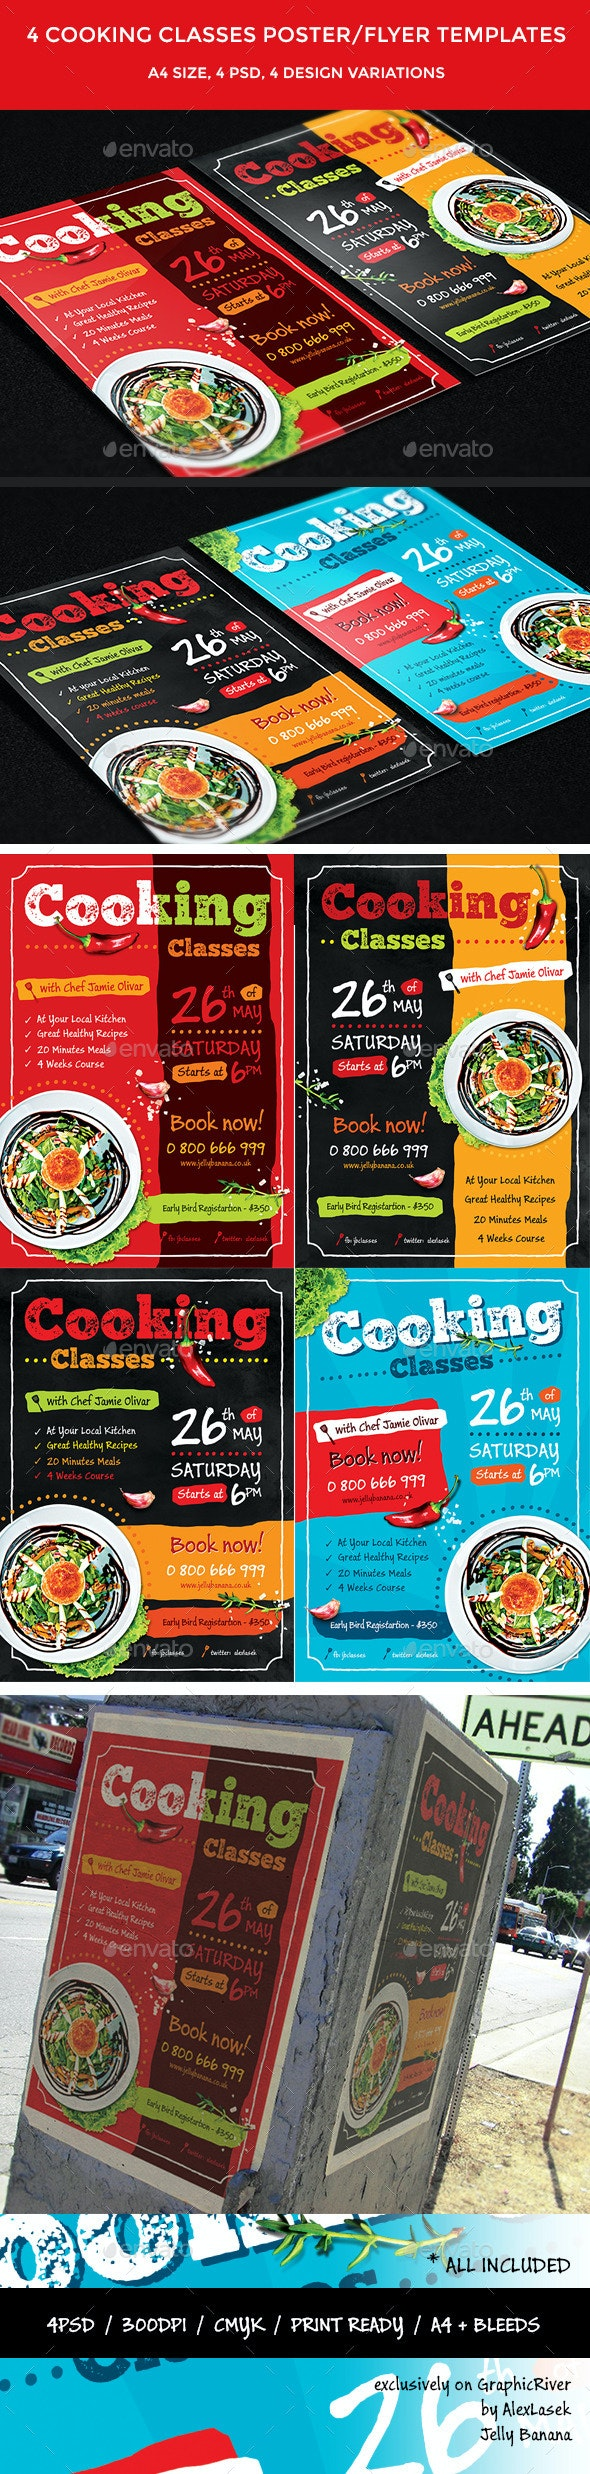 4 Cooking Classes Flyers / Posters  - Corporate Flyers